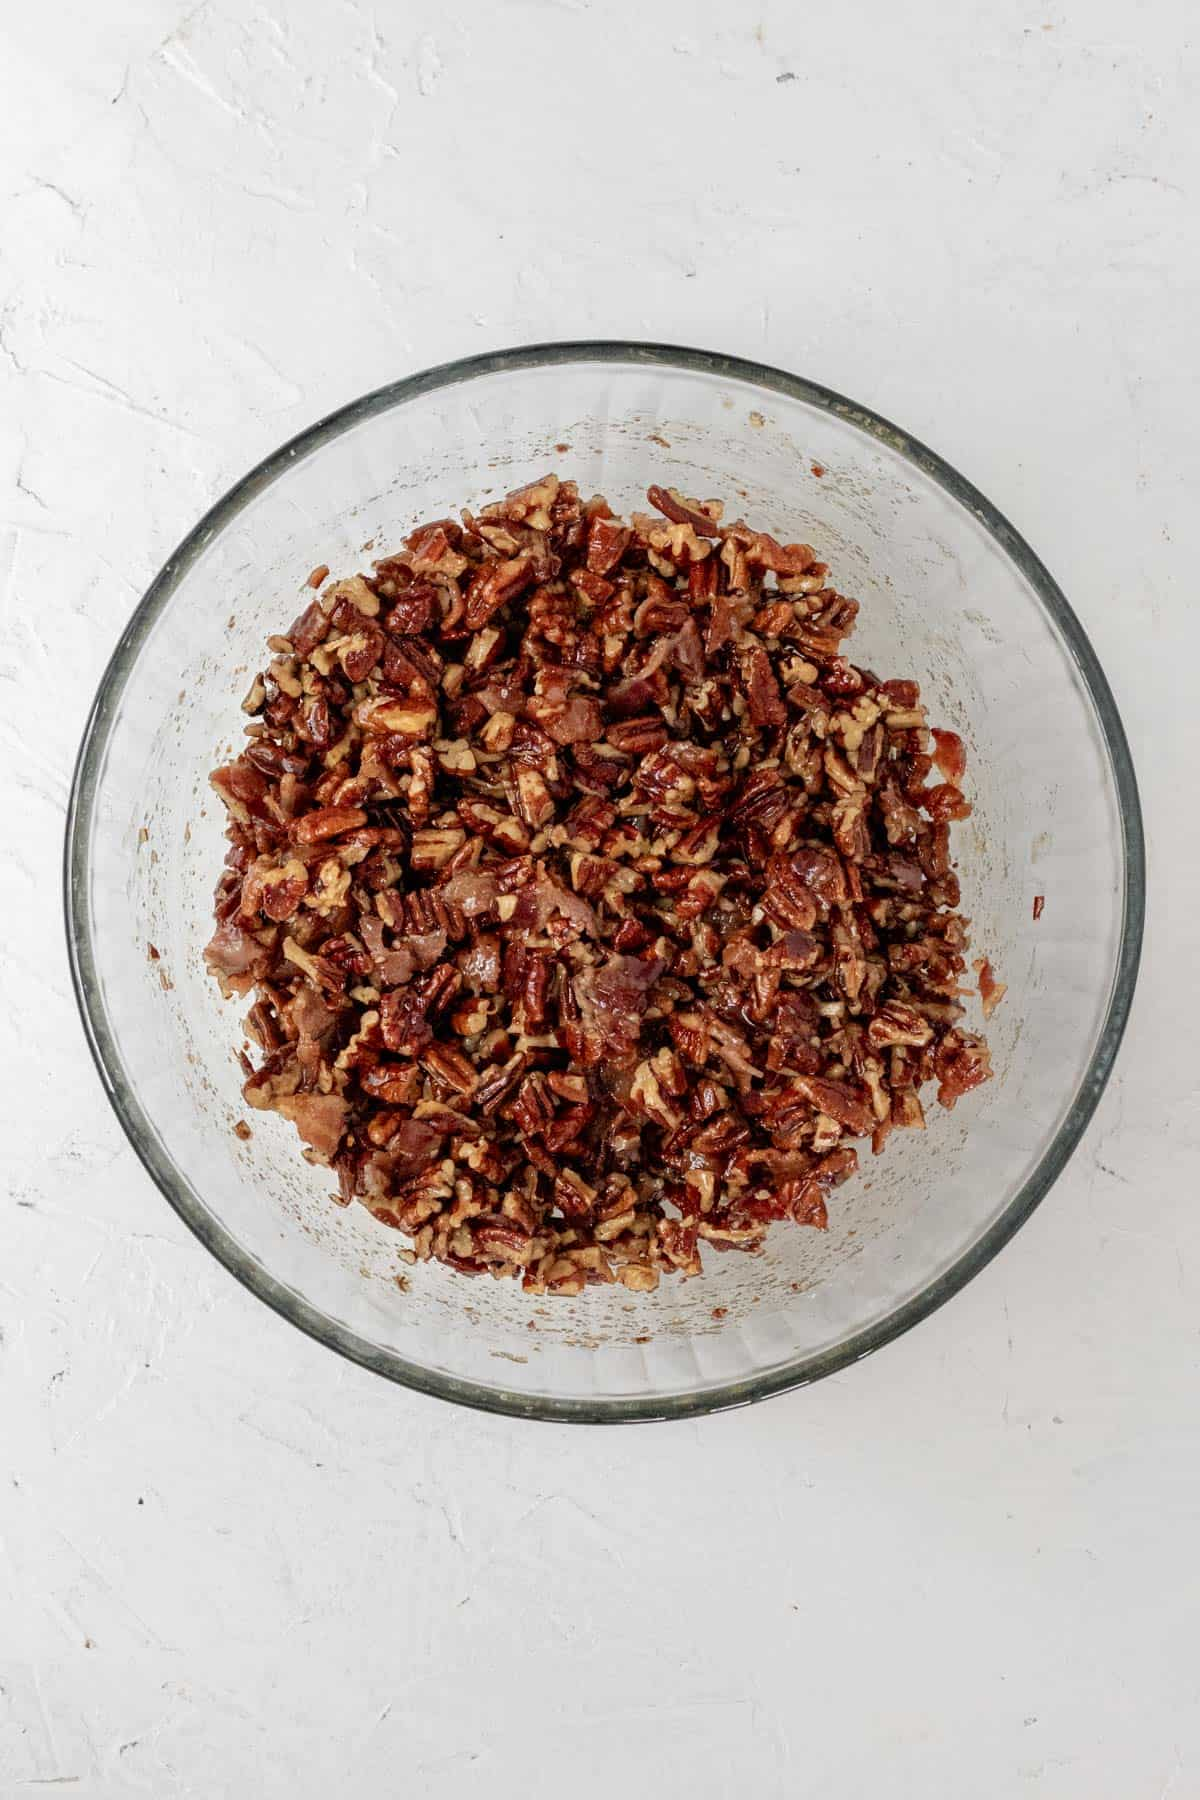 A mixture of bourbon, bacon, pecans, brown sugar, and melted better in a large glass mixing bowl.